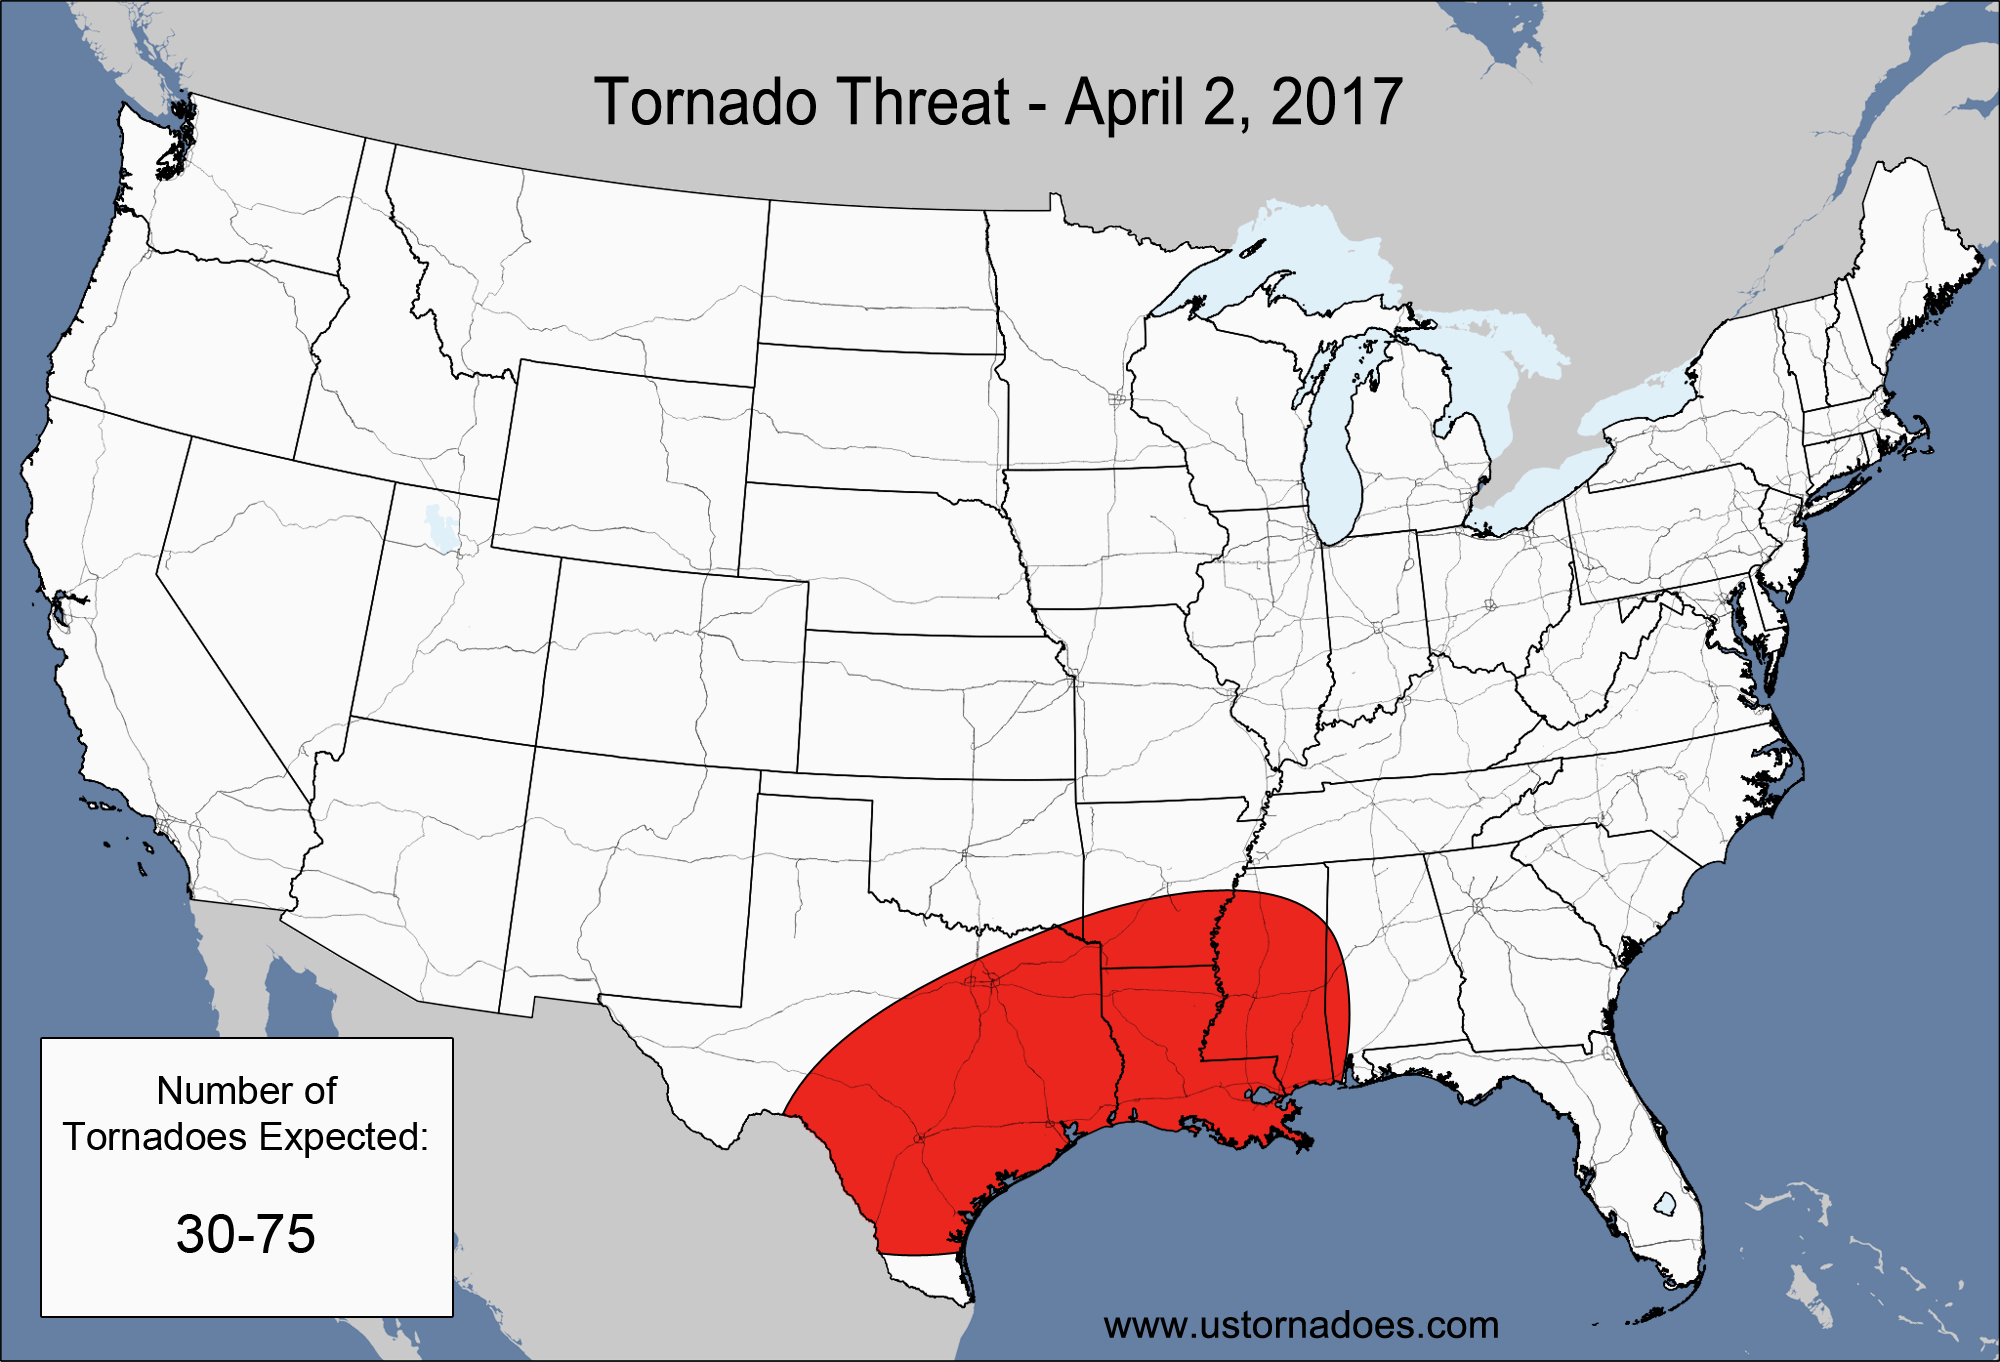 Map Of Tornadoes In Texas Yesterday.Tornado Threat Special Update April 2 2017 U S Tornadoes